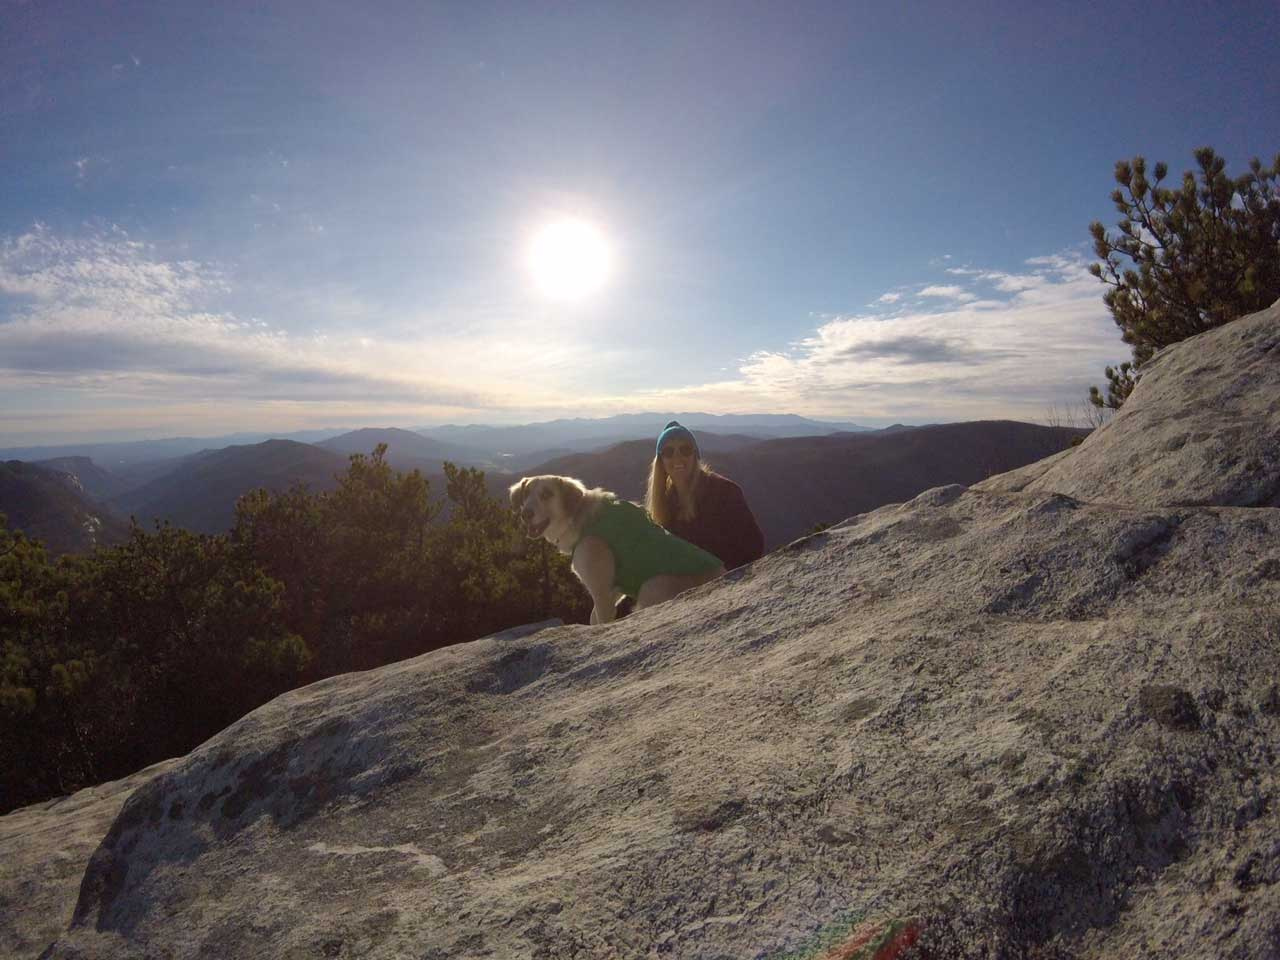 Hiking in North Carolina - Hawksbill Trail at Linville Gorge